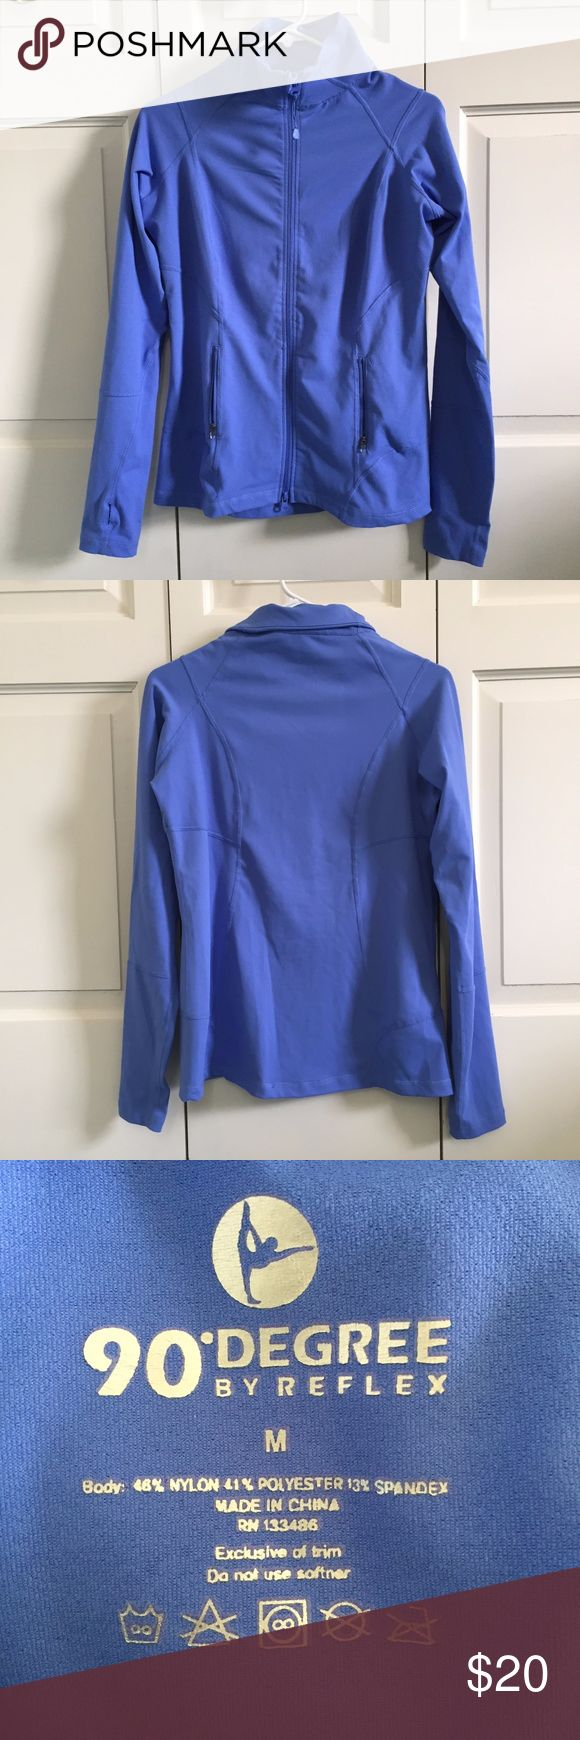 90 Degree by Reflex Athletic Jacket Periwinkle blue workout jacket from 90 Degree by Reflex. Full front zip with two zippered pockets and little thumbholes in the sleeves. Worn only a few times, but the front zipper's toggle elastic looks a little tired (see picture). 90 Degree By Reflex Jackets & Coats